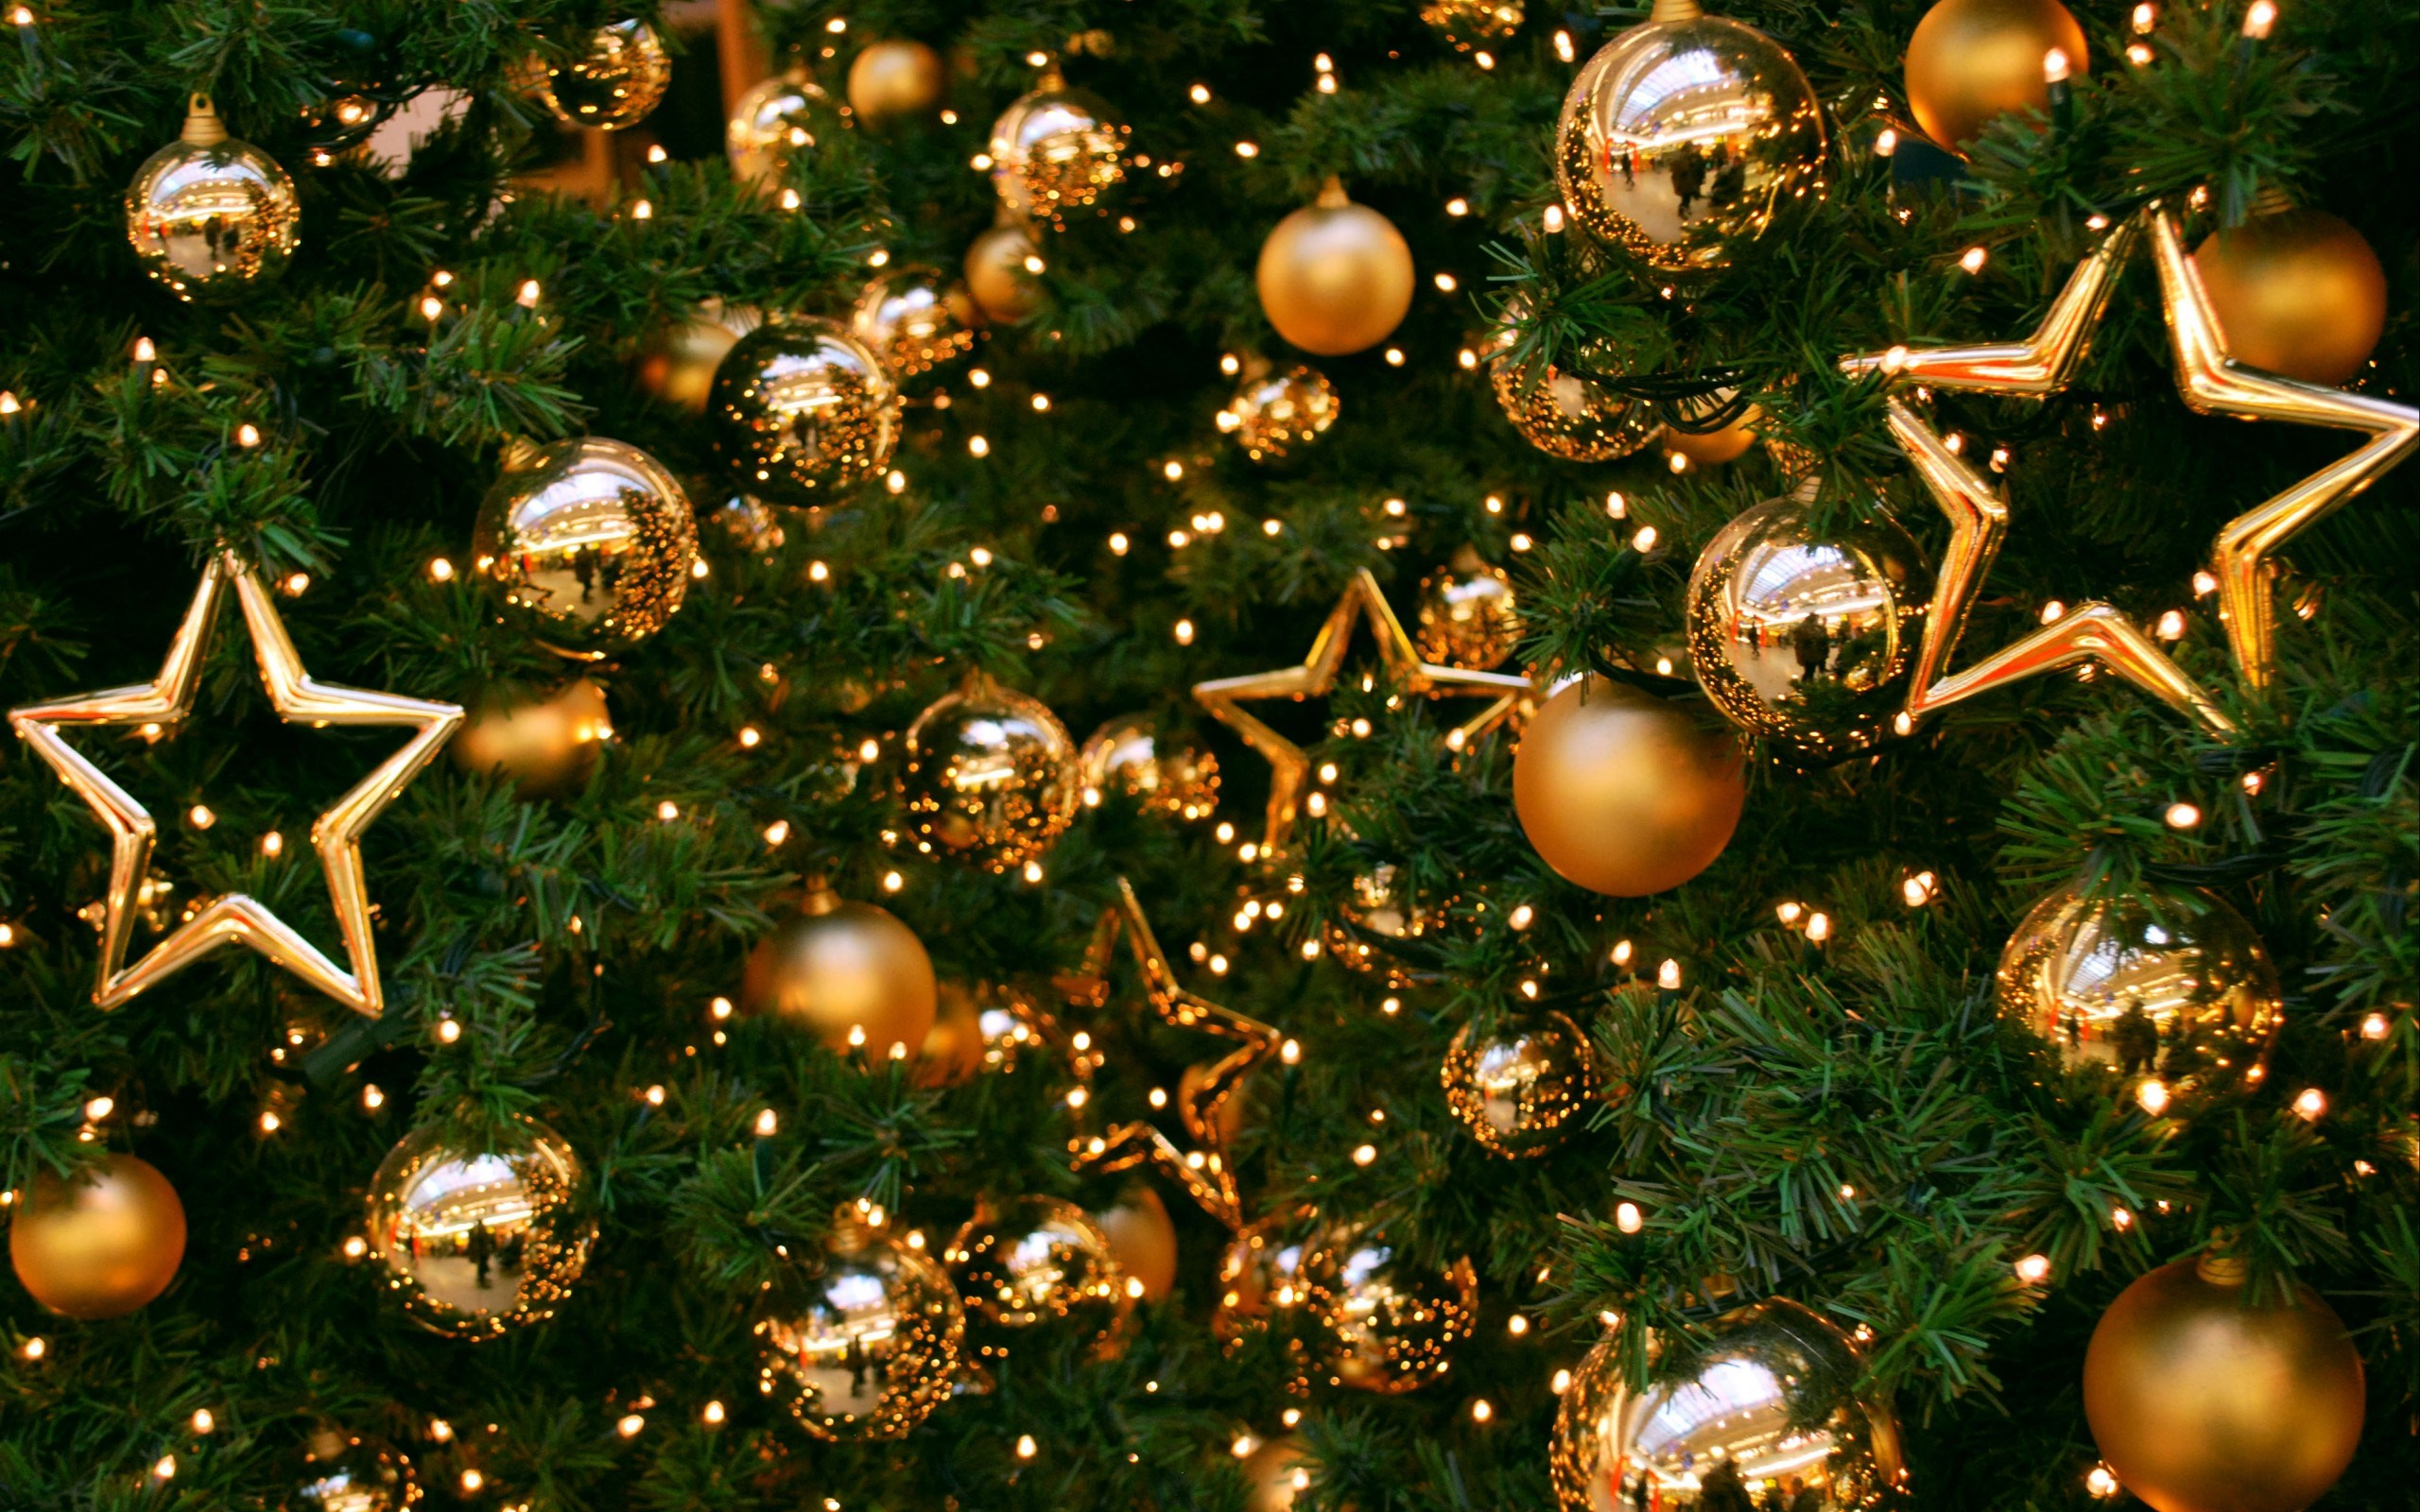 Wonderful Holiday Decorations Wallpaper